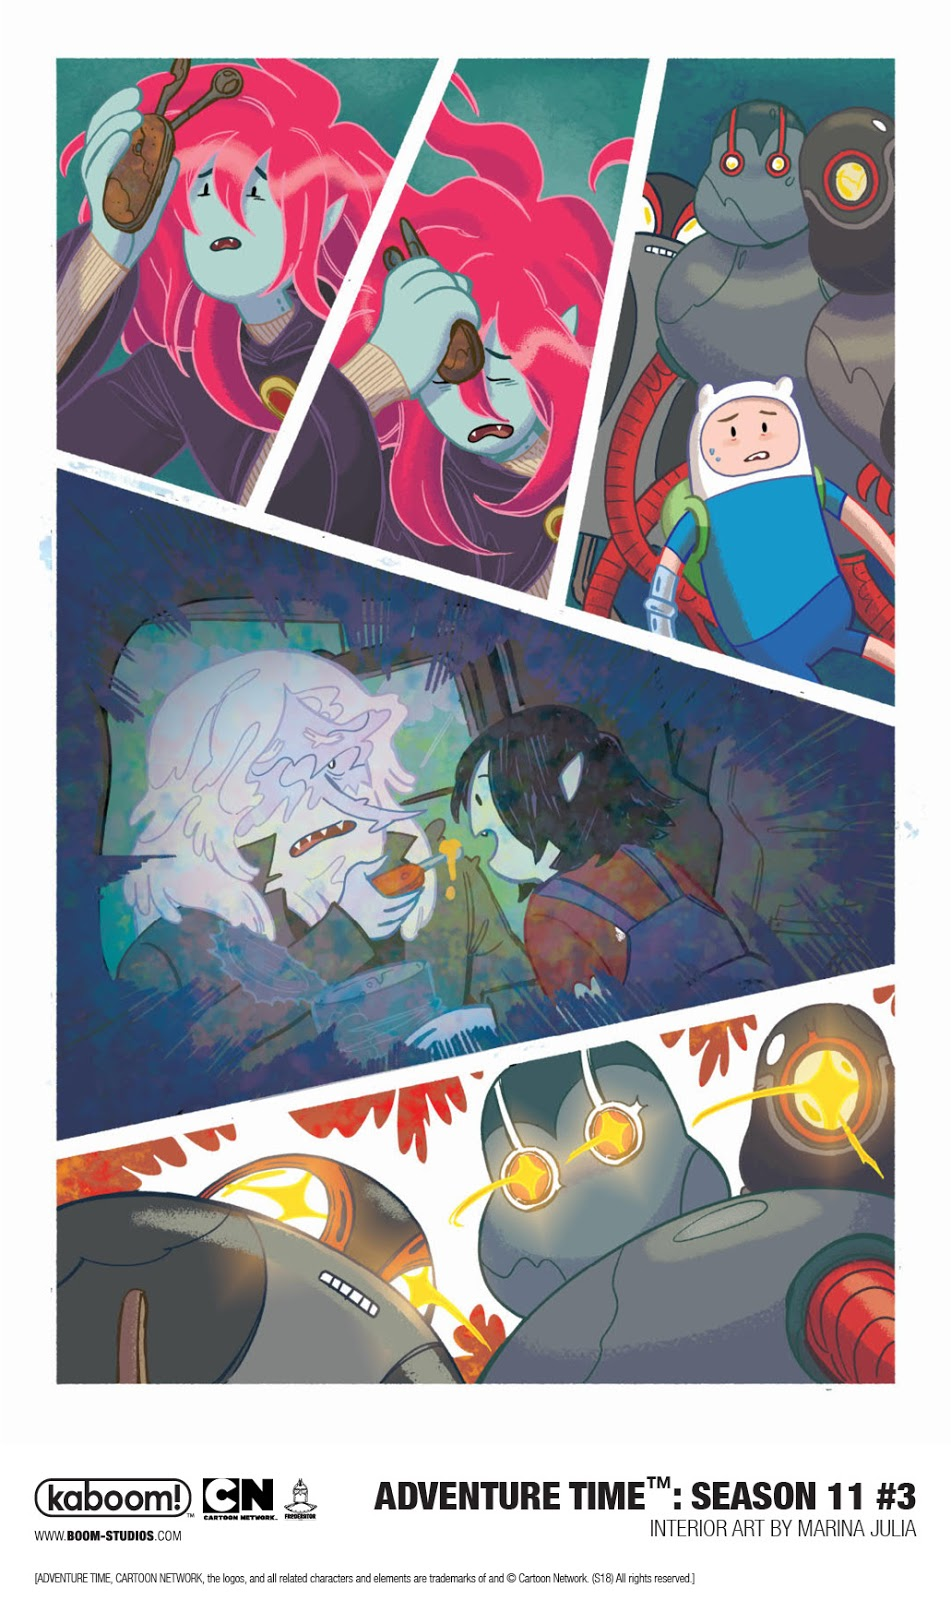 ADVENTURE TIME™ SEASON 11 #3